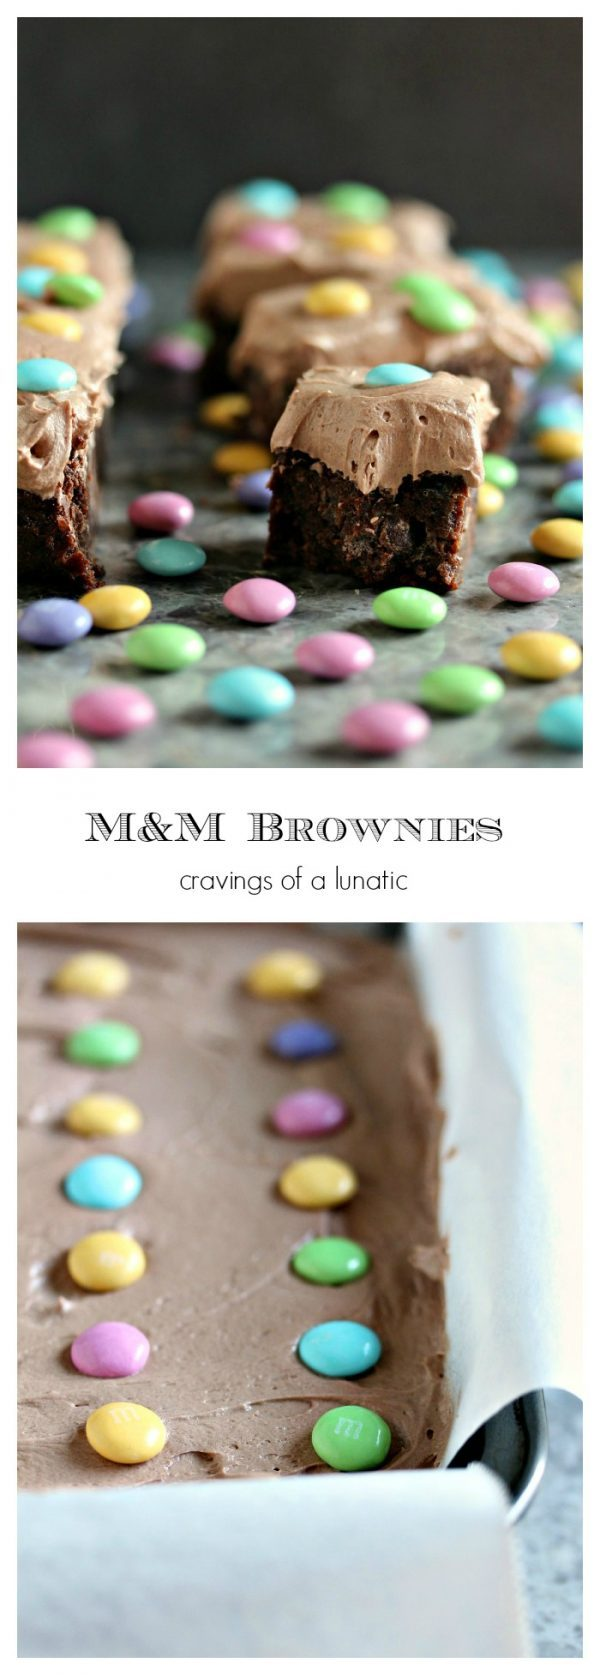 M&M Brownies. The Best Brownies in the World get a fresh makeover for Easter. This brownie recipe is simple to make and my family's personal favourite.